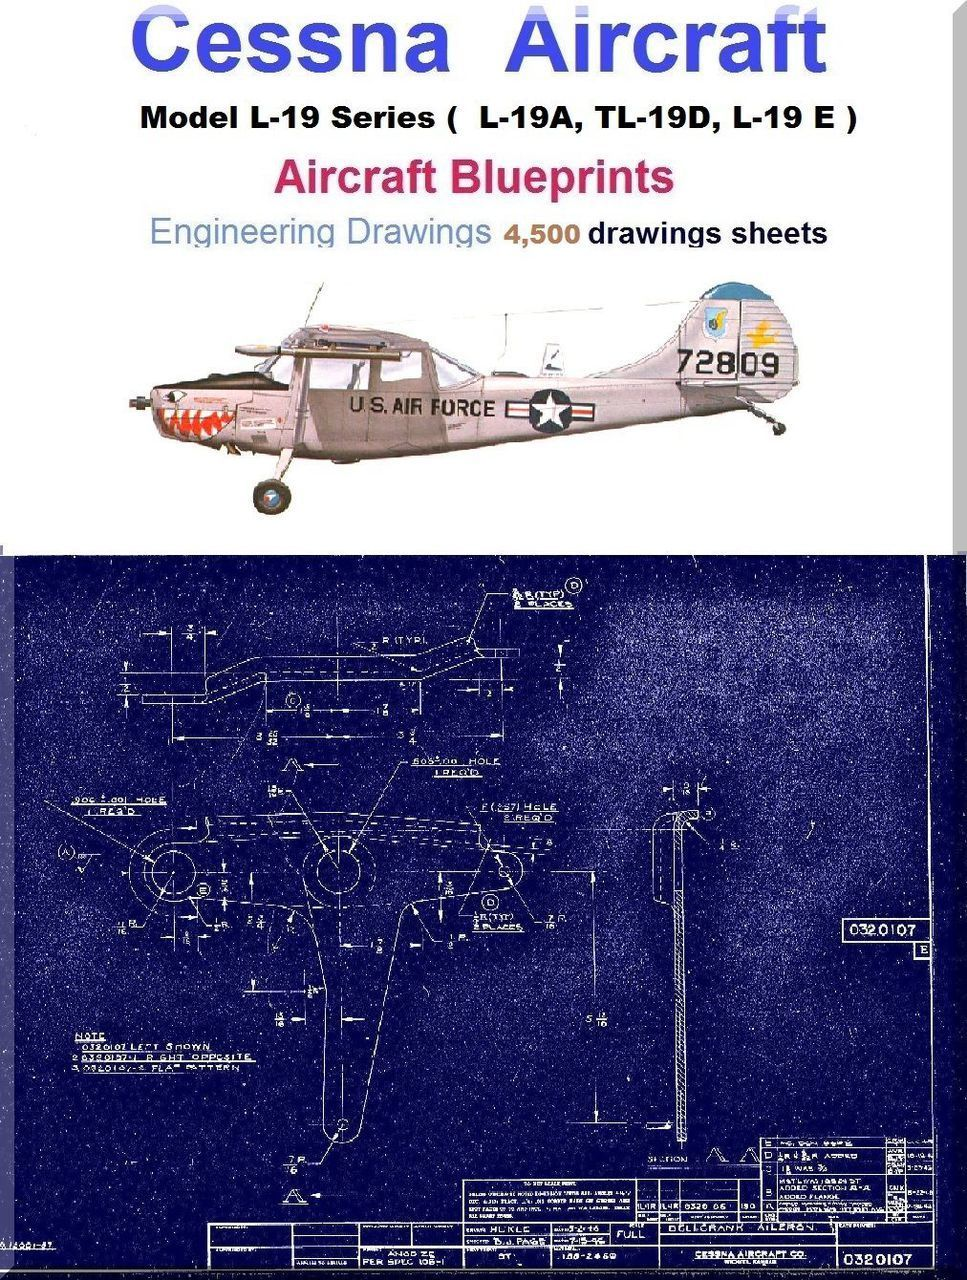 Cessna L19 Series Aircraft Blueprints Engineering Drawings DVDs